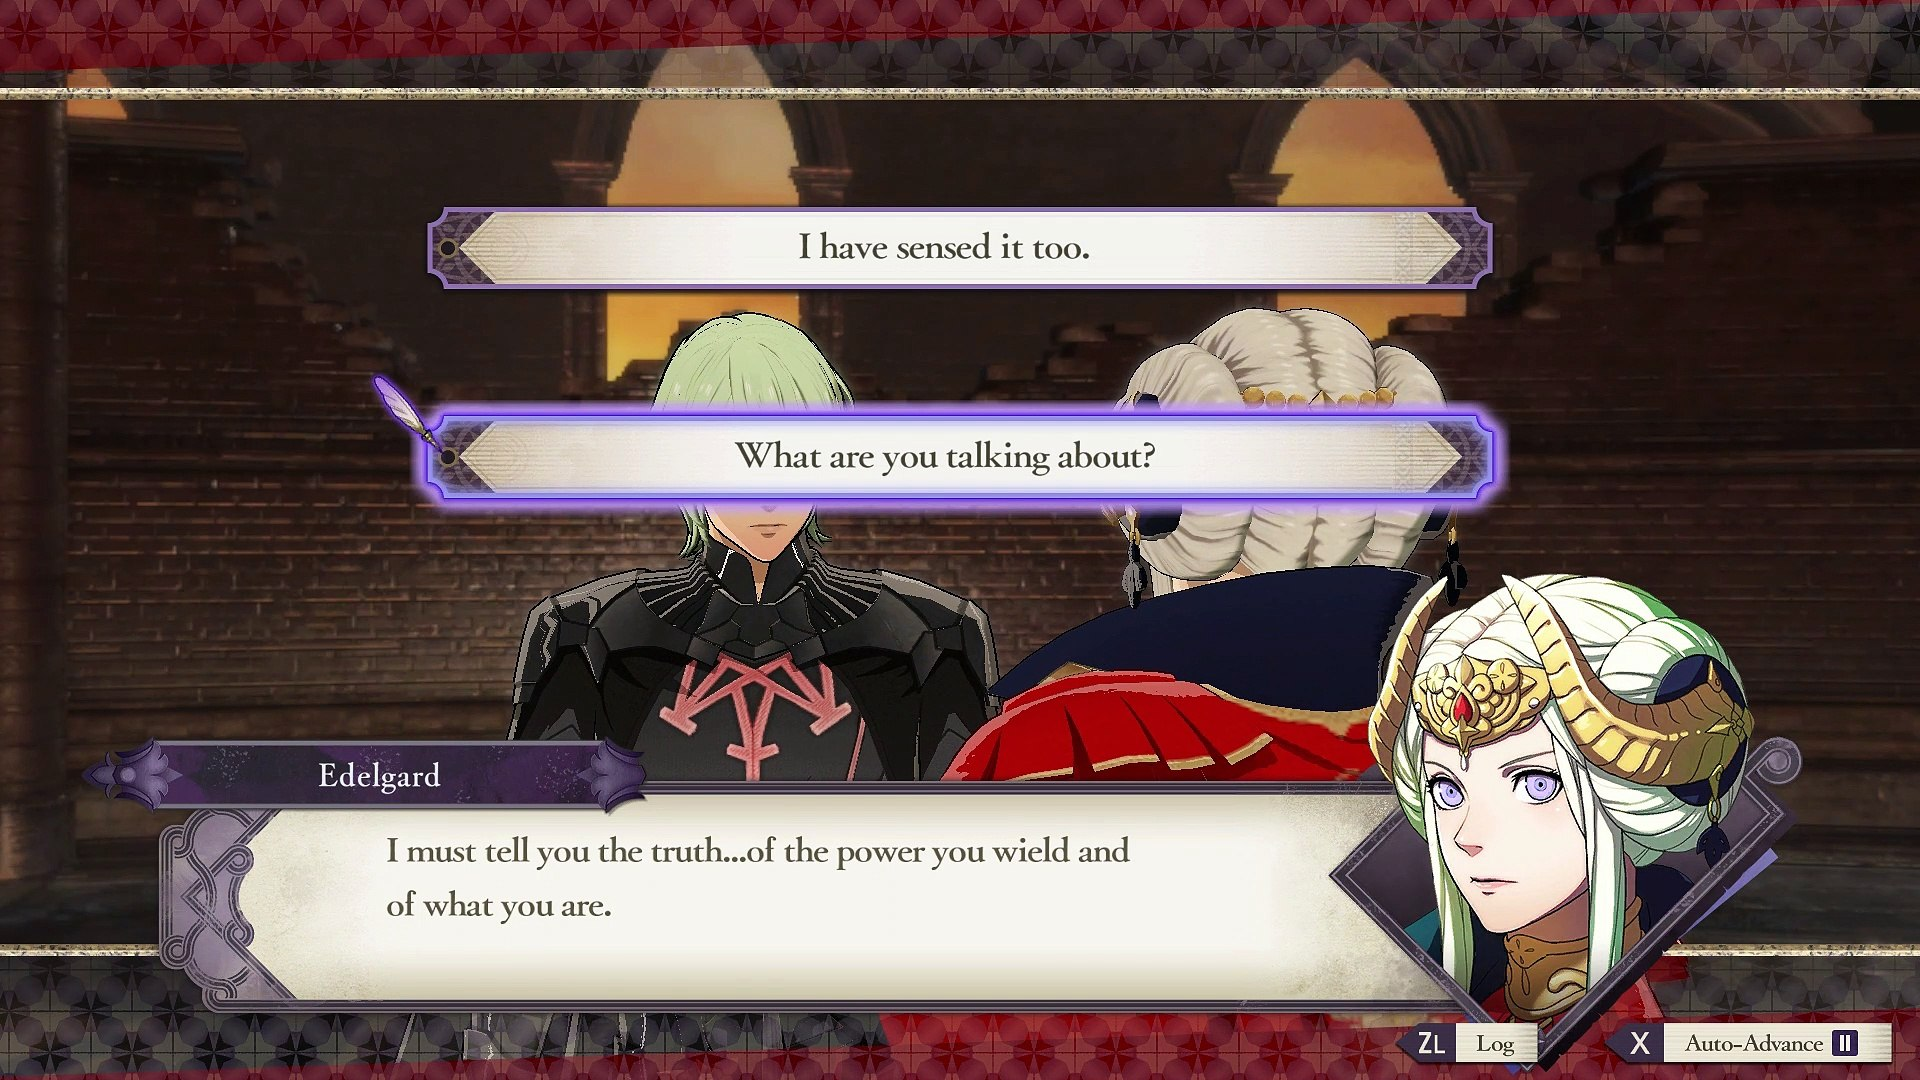 Fire Emblem Three Houses - Chapter 18 To The End Of A Dream: Edelgard Tells Byleth He Shares the God